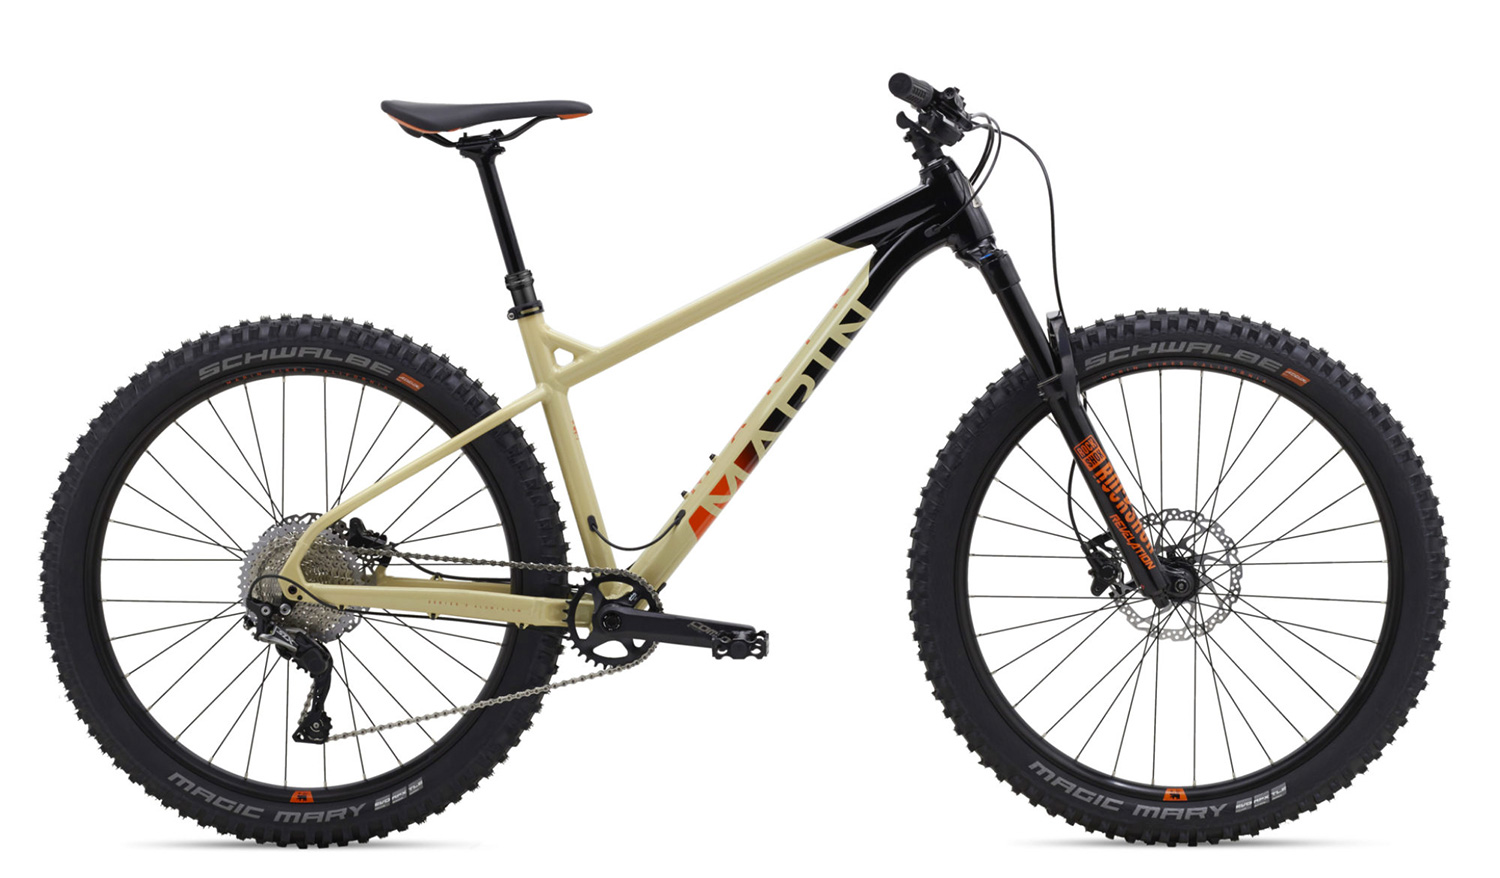 2018 Marin Bikes San Quentin hardtail mountain bike